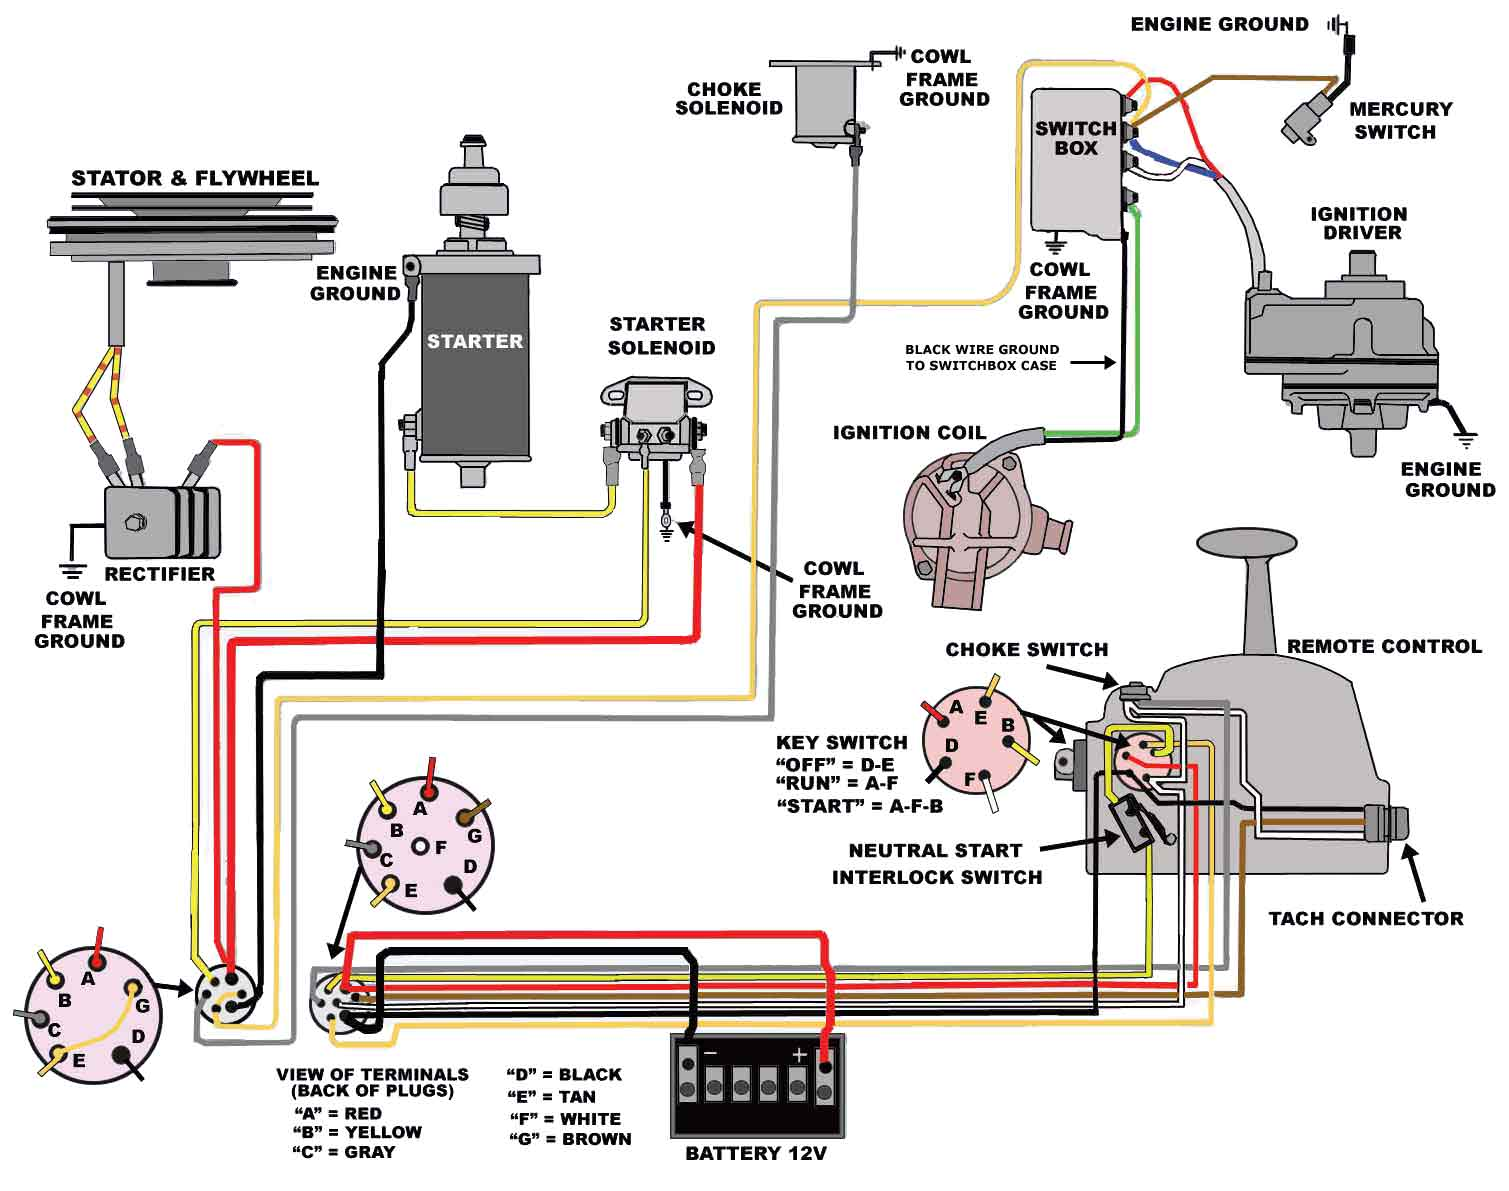 hight resolution of mercury marine wiring wiring diagram third level rh 3 19 13 jacobwinterstein com boat engine wiring diagram marine alternator engine wiring diagram